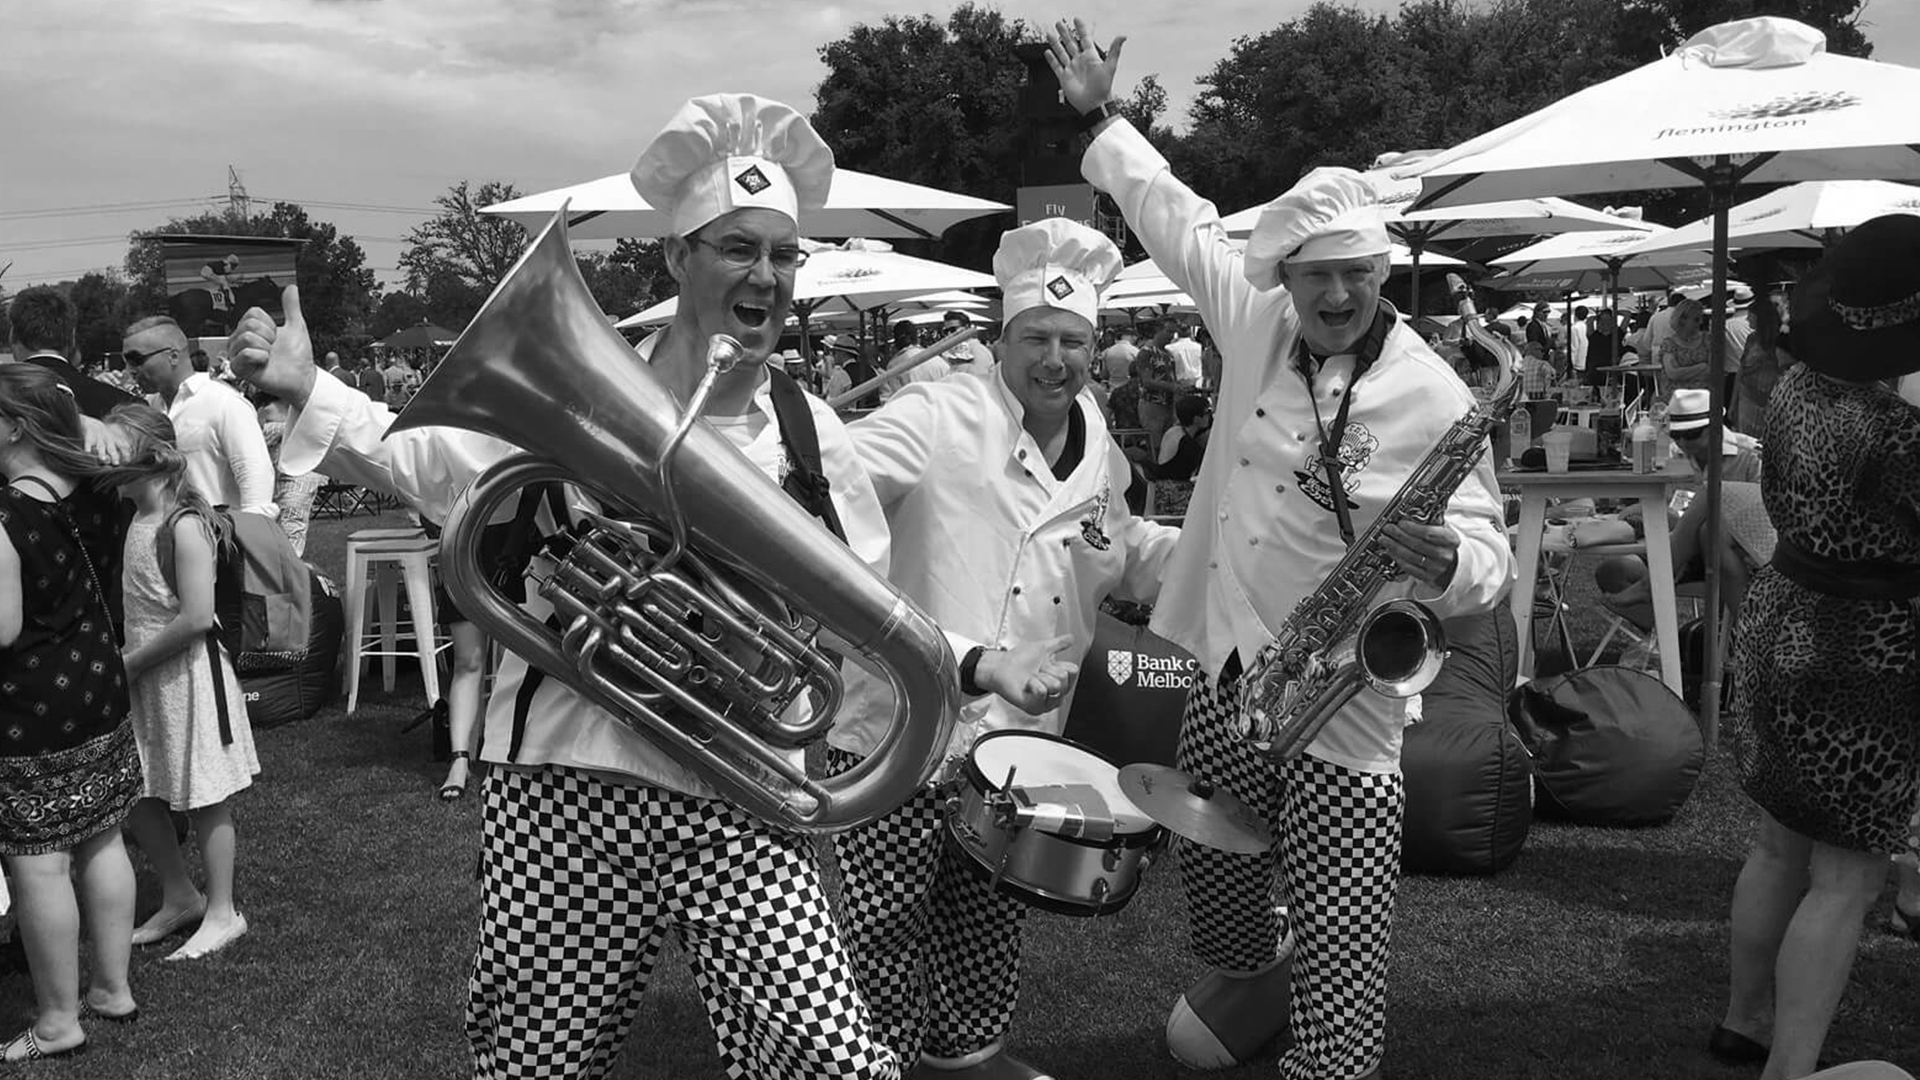 SCHEDULE AN EVENT - Have a 3-piece chef-themed ska band coming? Or something a little more down-to-earth? Click here to get it on Planning Center Resources.